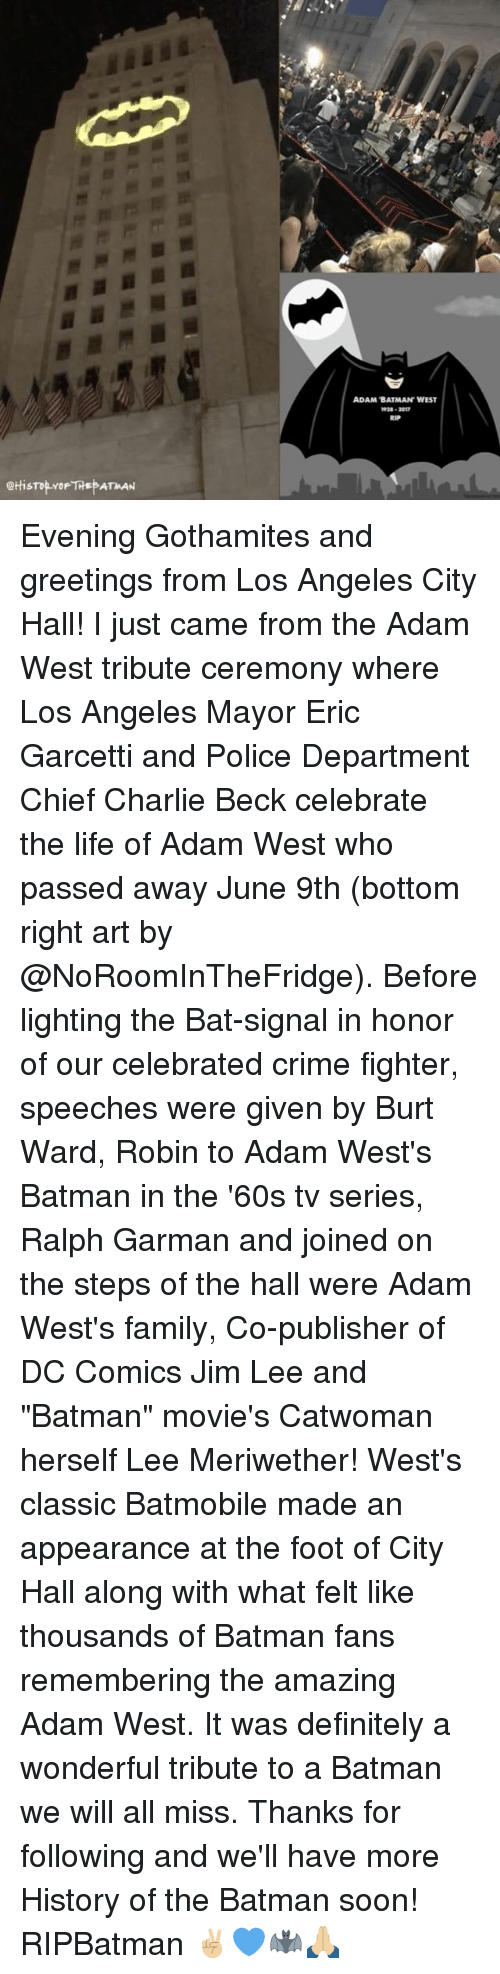 """city hall: eHisTop YoF THE ATMAN  ADAM BATMAN WEST Evening Gothamites and greetings from Los Angeles City Hall! I just came from the Adam West tribute ceremony where Los Angeles Mayor Eric Garcetti and Police Department Chief Charlie Beck celebrate the life of Adam West who passed away June 9th (bottom right art by @NoRoomInTheFridge). Before lighting the Bat-signal in honor of our celebrated crime fighter, speeches were given by Burt Ward, Robin to Adam West's Batman in the '60s tv series, Ralph Garman and joined on the steps of the hall were Adam West's family, Co-publisher of DC Comics Jim Lee and """"Batman"""" movie's Catwoman herself Lee Meriwether! West's classic Batmobile made an appearance at the foot of City Hall along with what felt like thousands of Batman fans remembering the amazing Adam West. It was definitely a wonderful tribute to a Batman we will all miss. Thanks for following and we'll have more History of the Batman soon! RIPBatman ✌🏼💙🦇🙏🏼"""